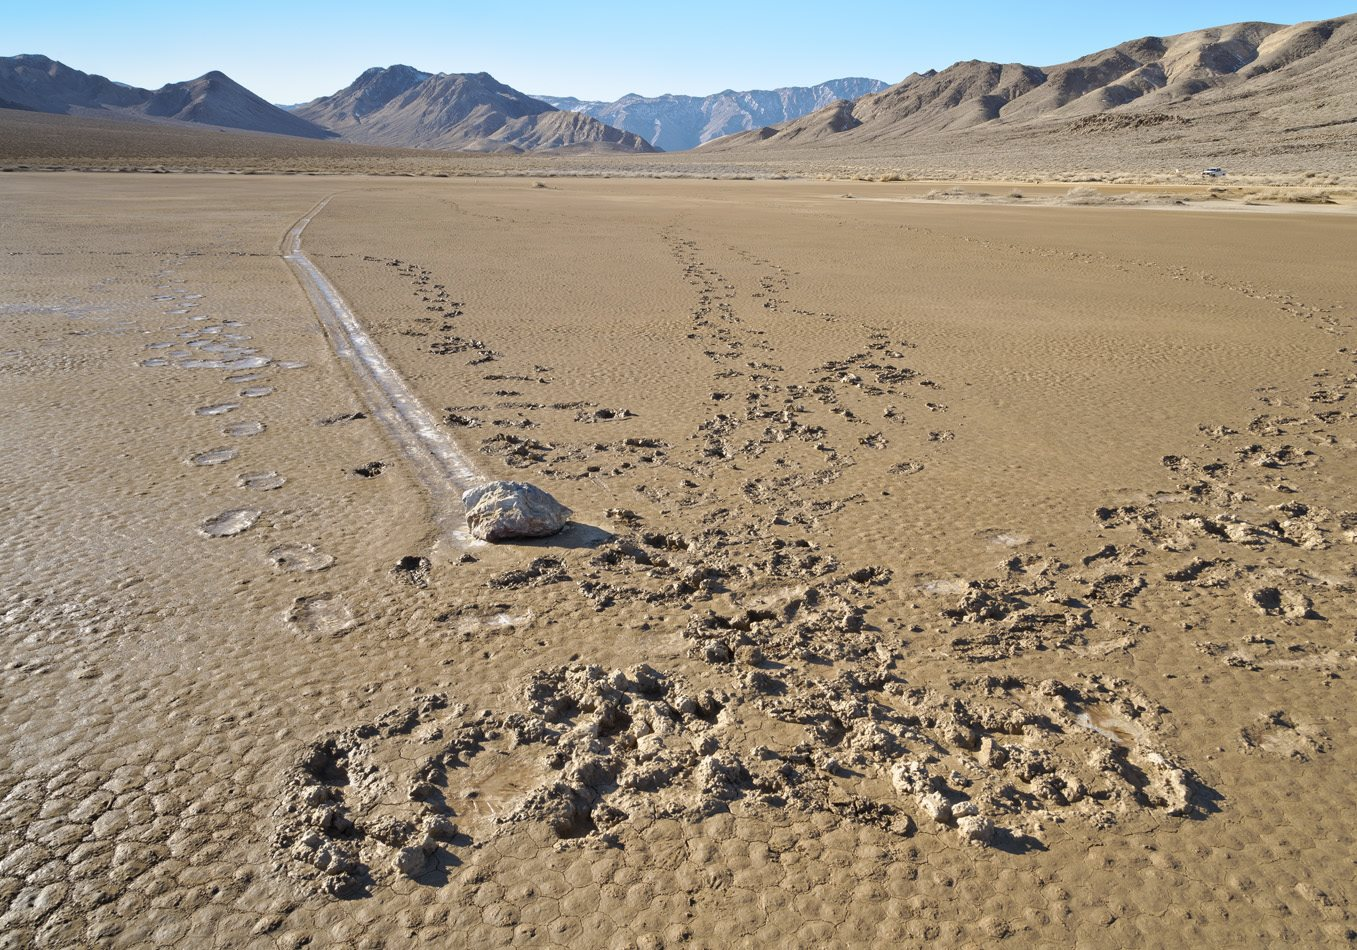 Image originally posted on the Death Valley National Park Facebook page. Used with permission.